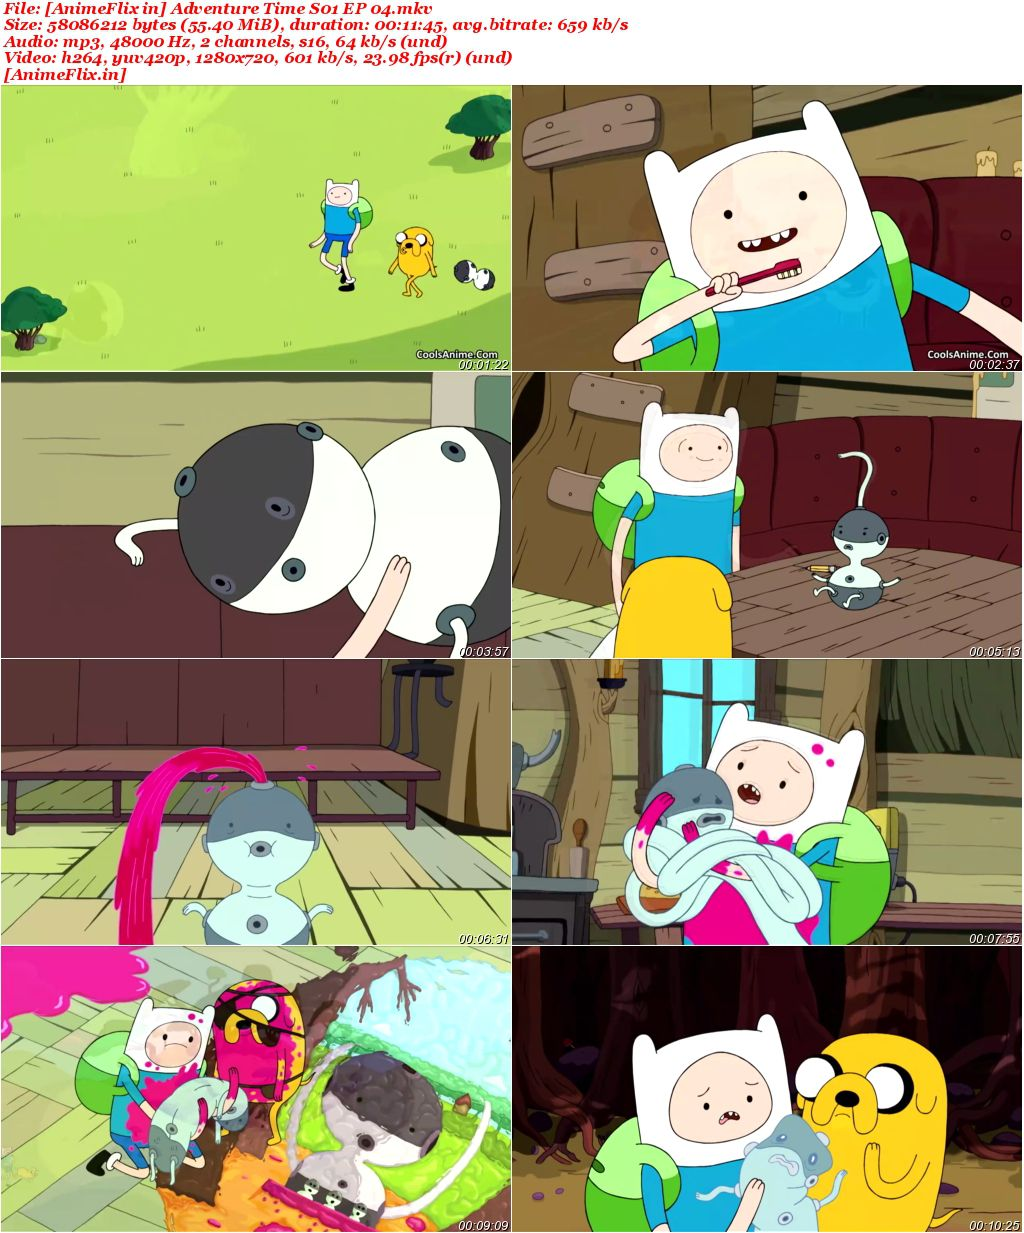 Anime-Flix-in-Adventure-Time-S01-EP-04